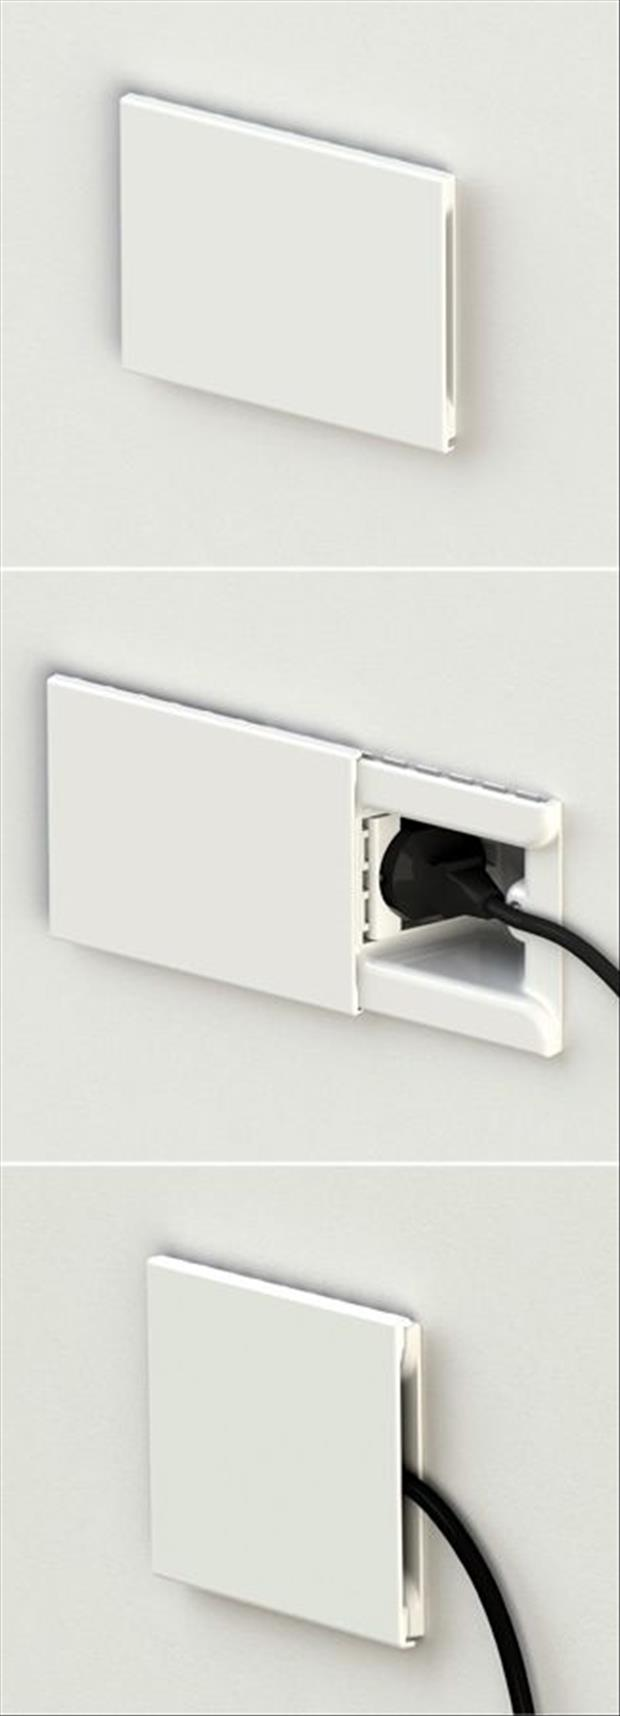 plugin outlet covers